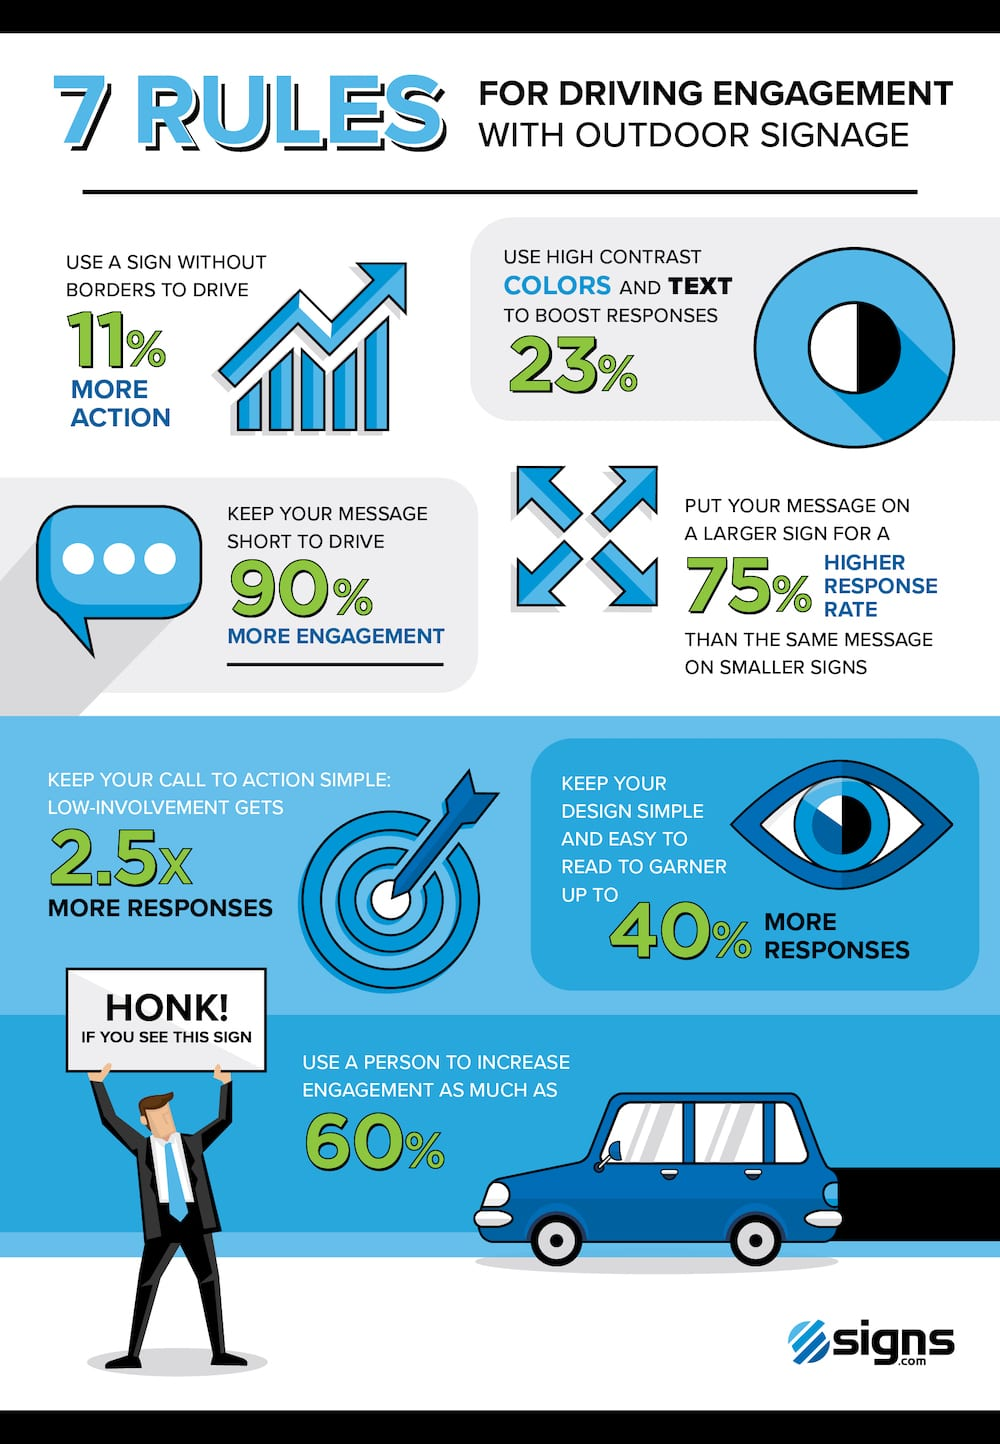 Infographic showing the 7 rules for driving engagement with outdoor signage.